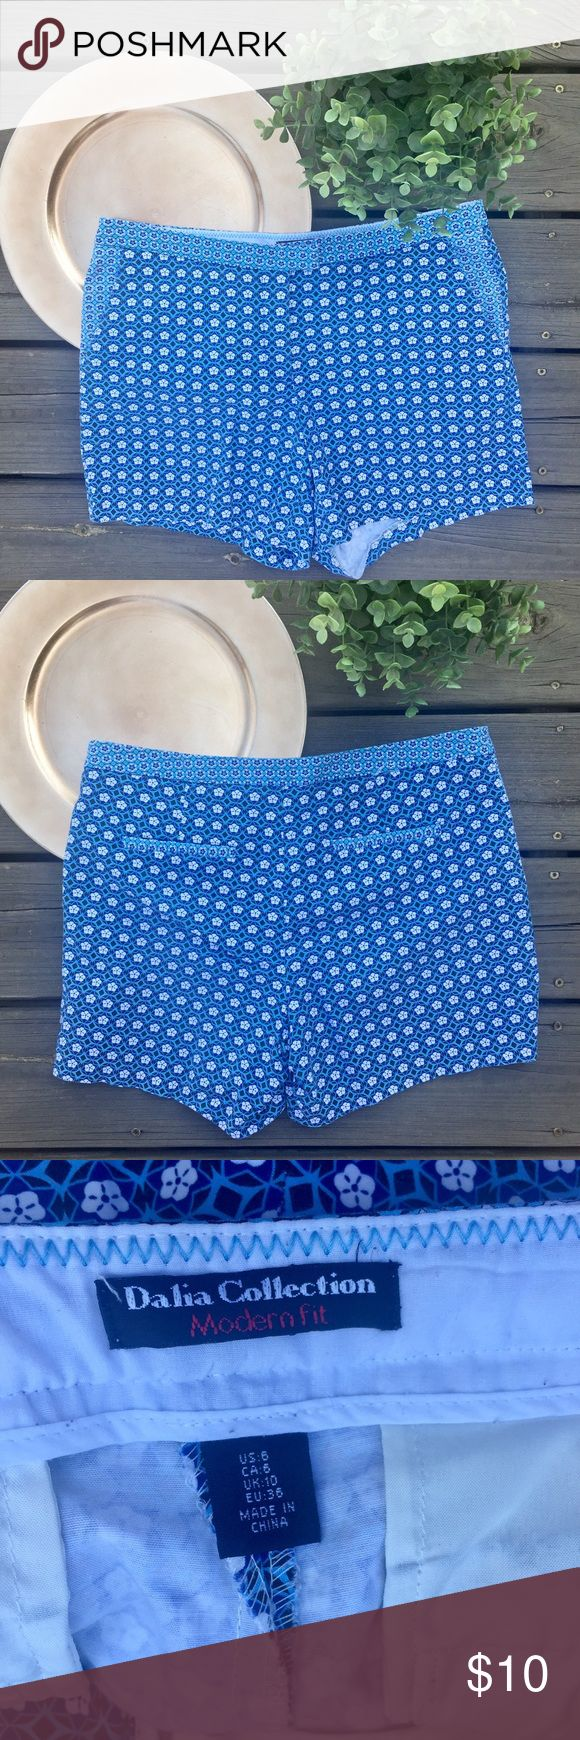 Dalia Collection Modern Fit Geometric Shorts Dalia Collection Modern Fit Blue And White Ikat Geometric Pattern Shorts Size 8 dalia collection Shorts